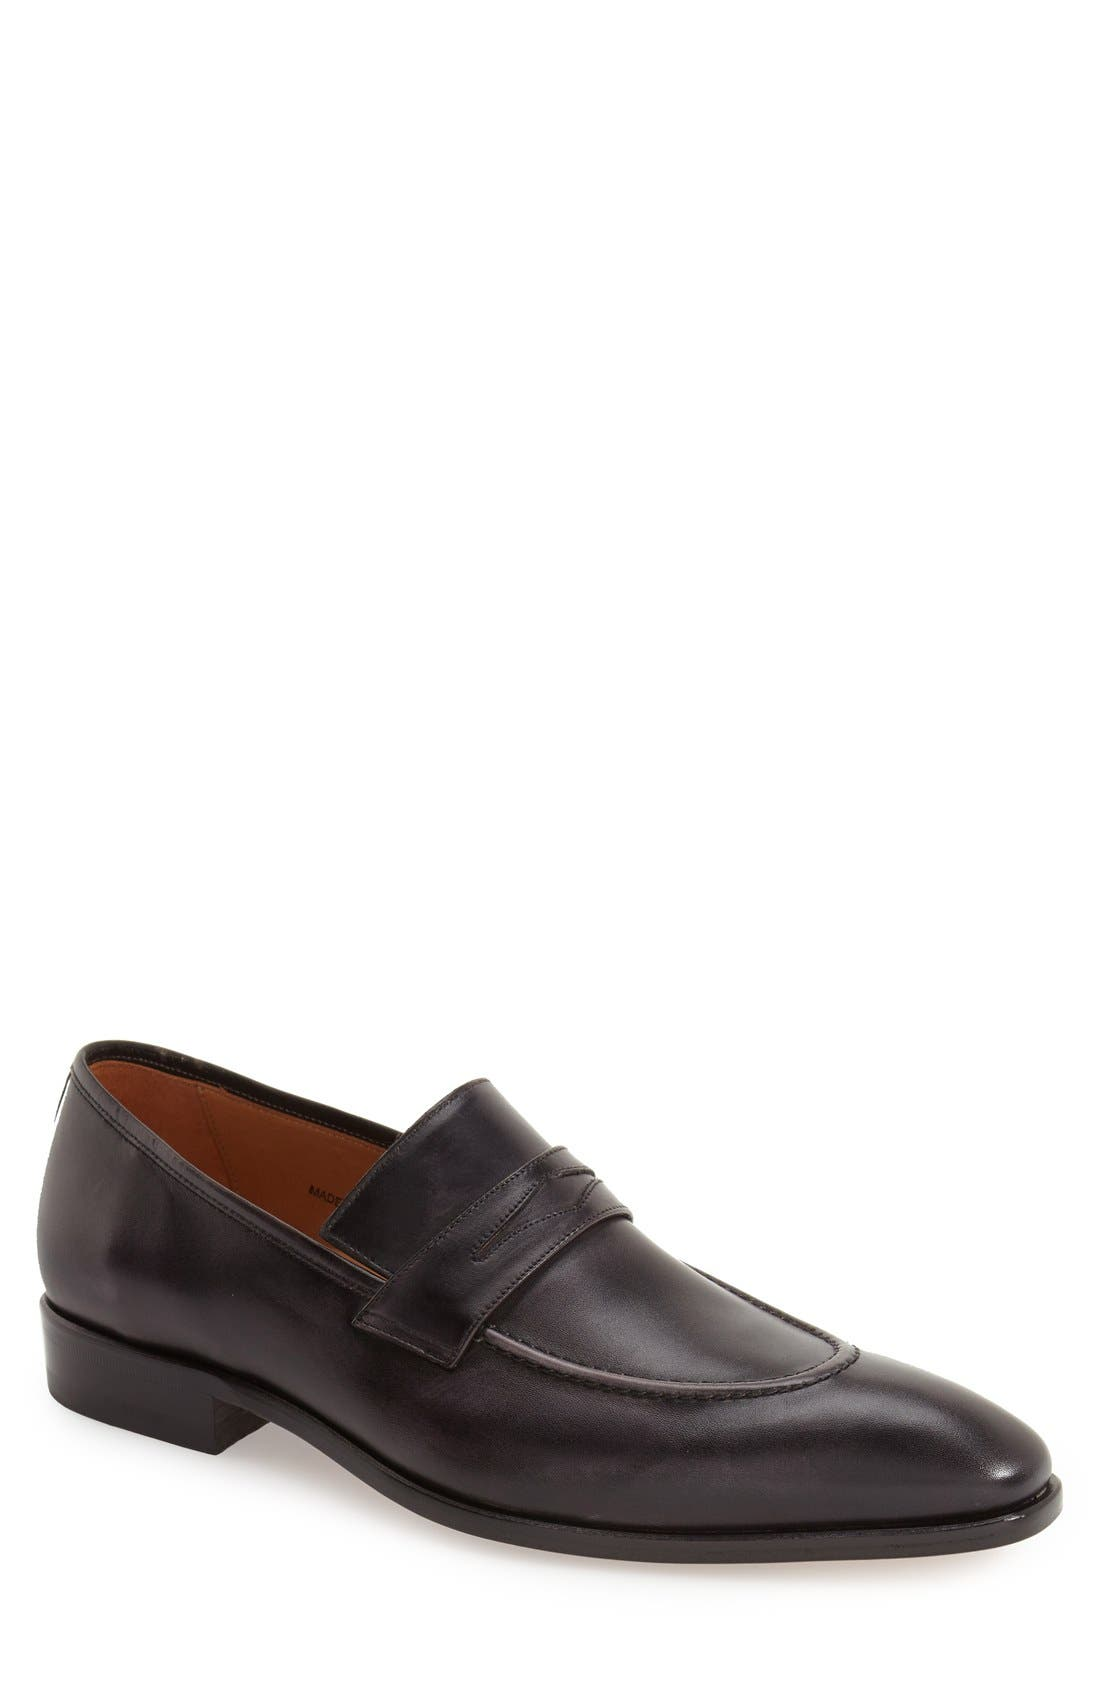 'Bione' Penny Loafer,                             Main thumbnail 1, color,                             008